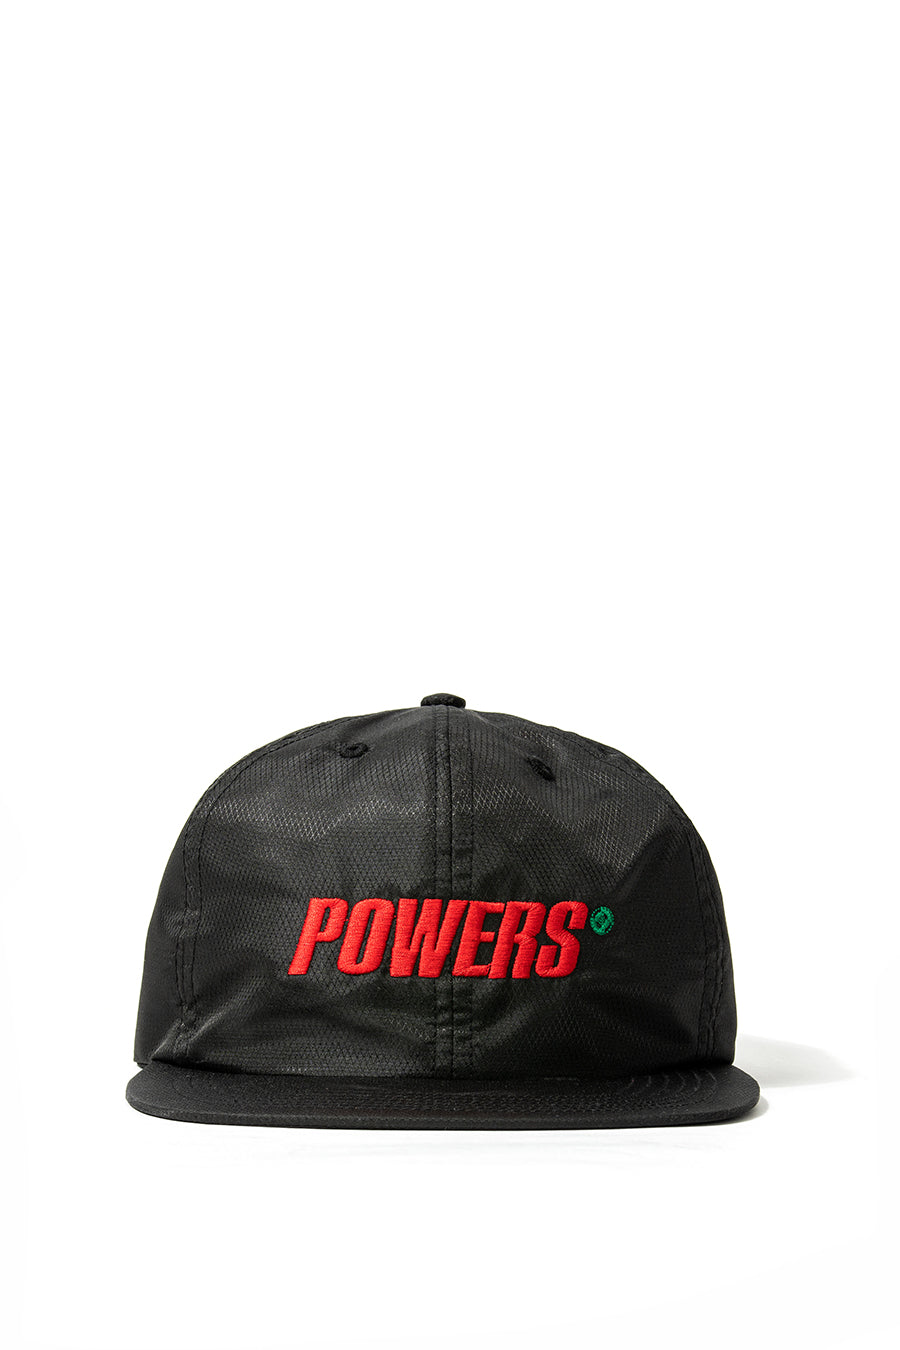 Powers Supply - Black Spellout Diamond Ripstop Hat